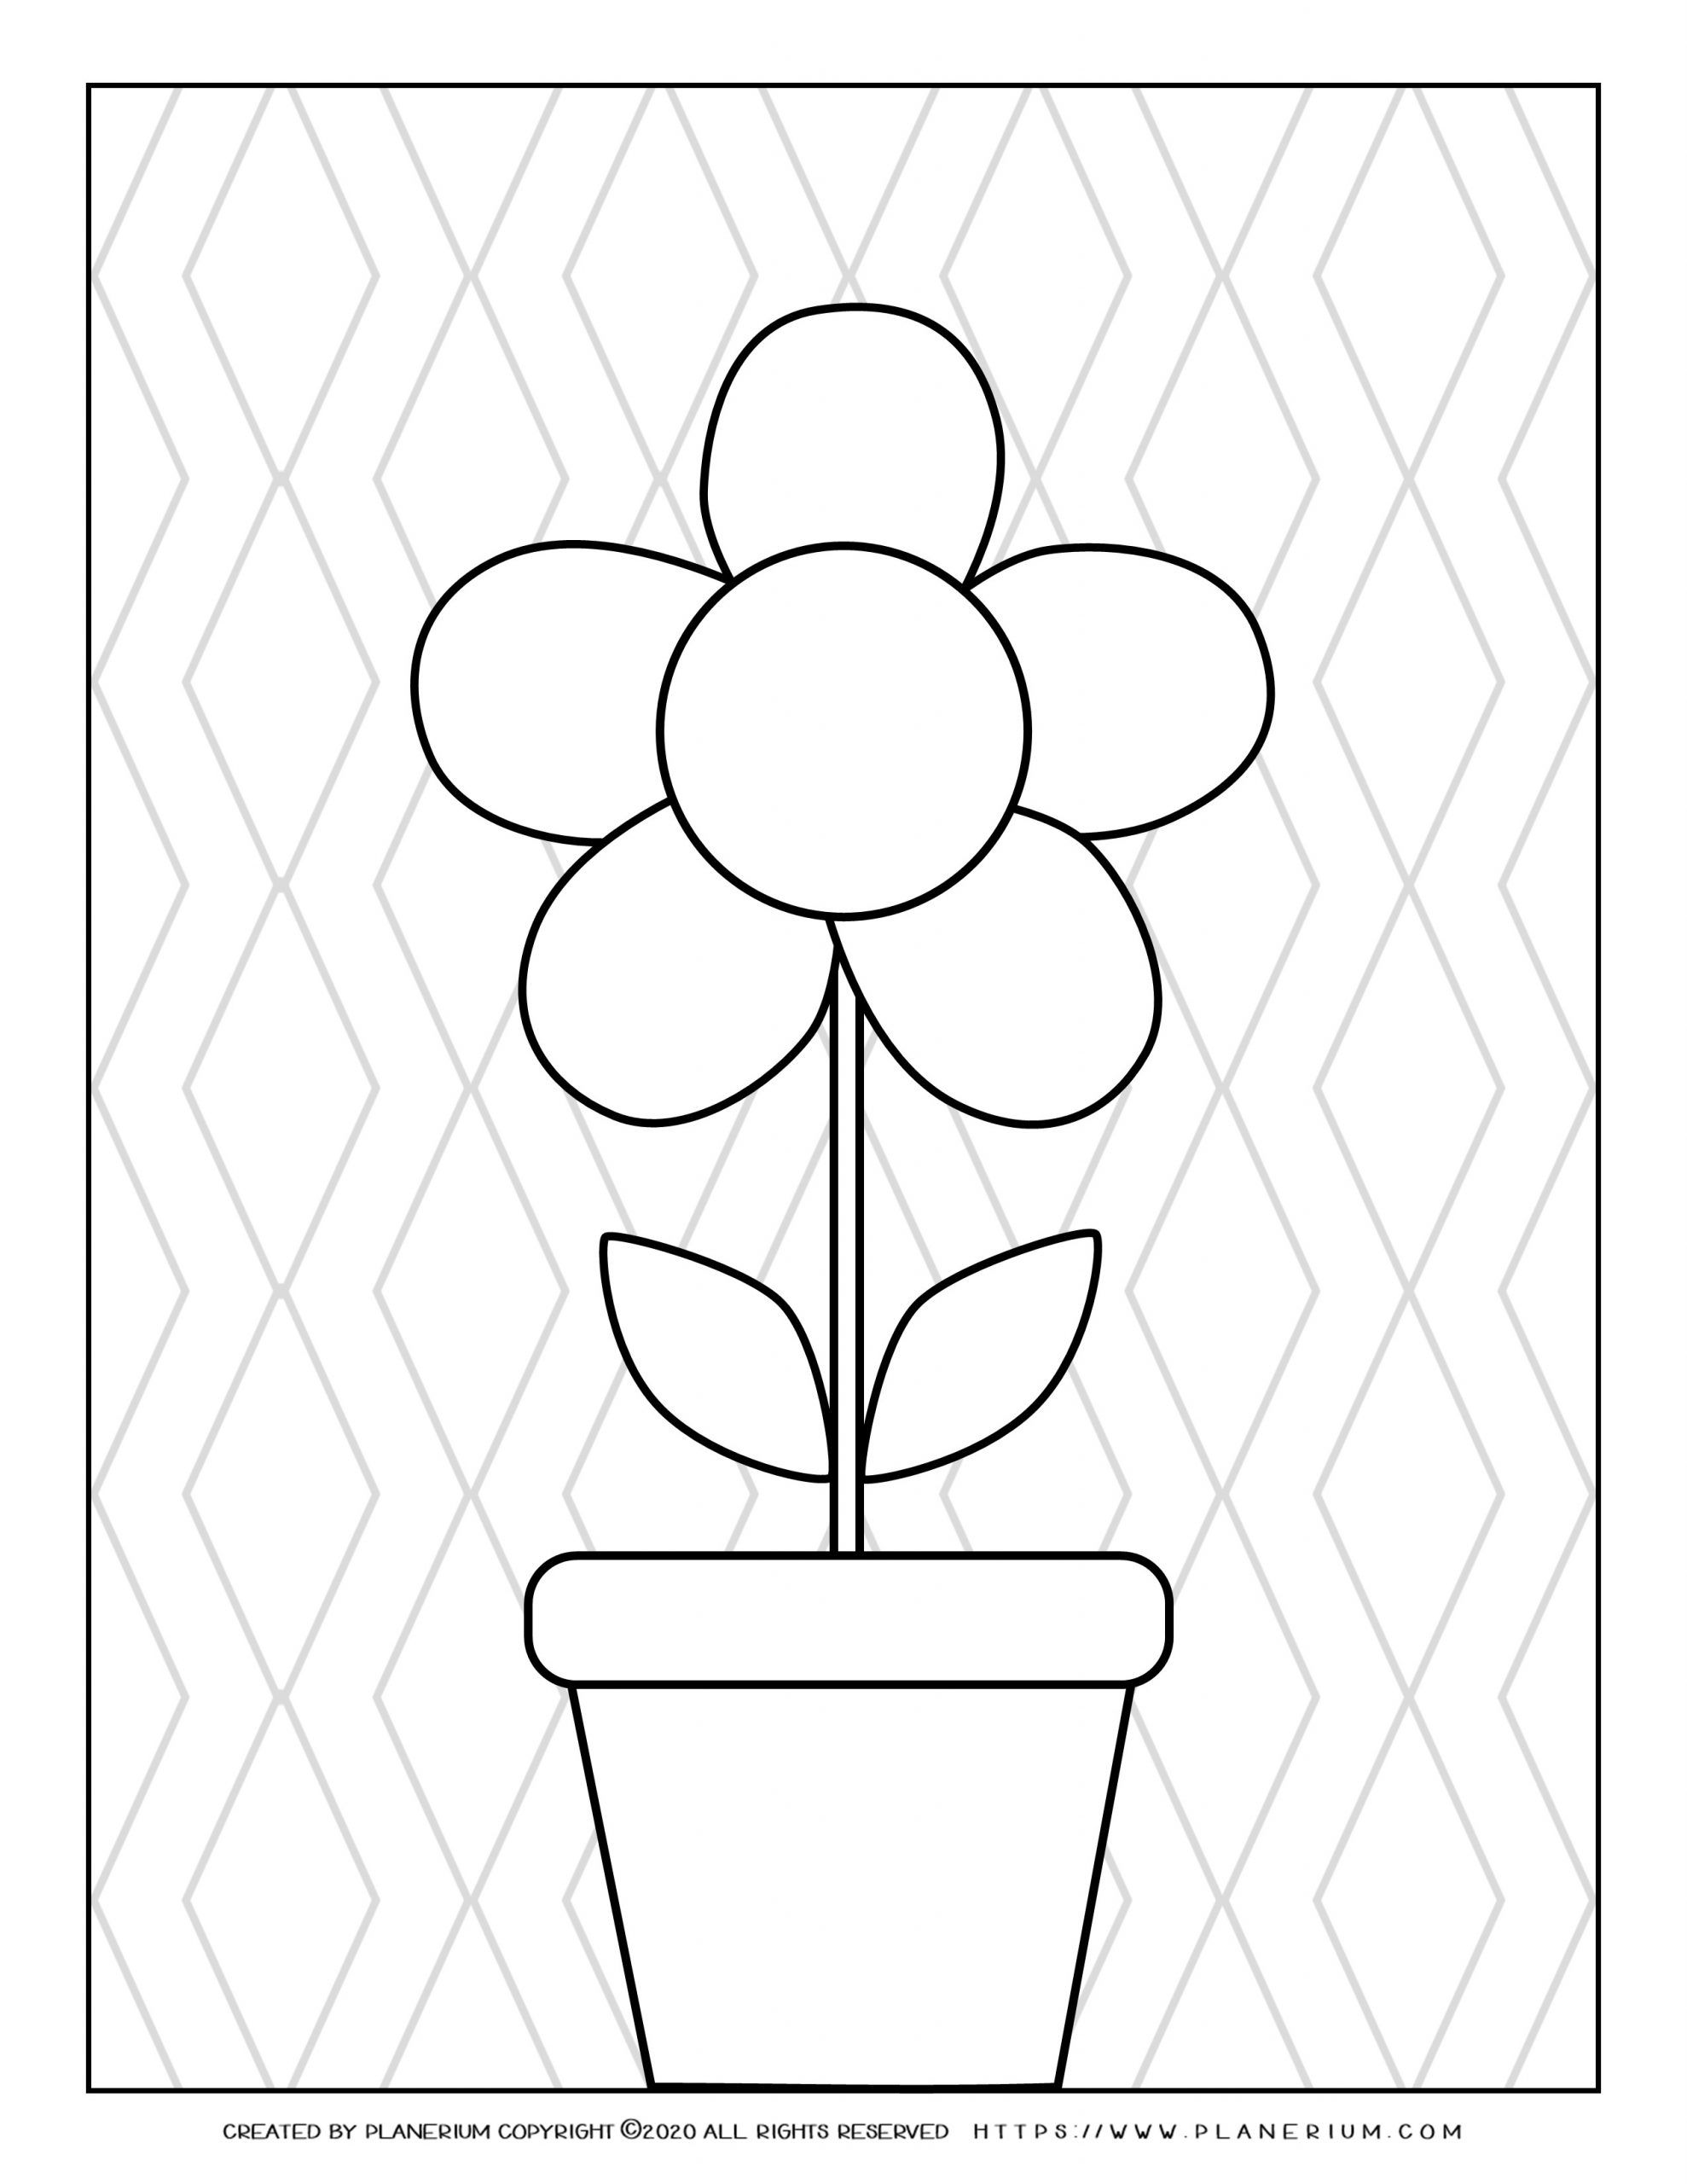 Spring coloring page with a flower in a pot and vertical zigzag background